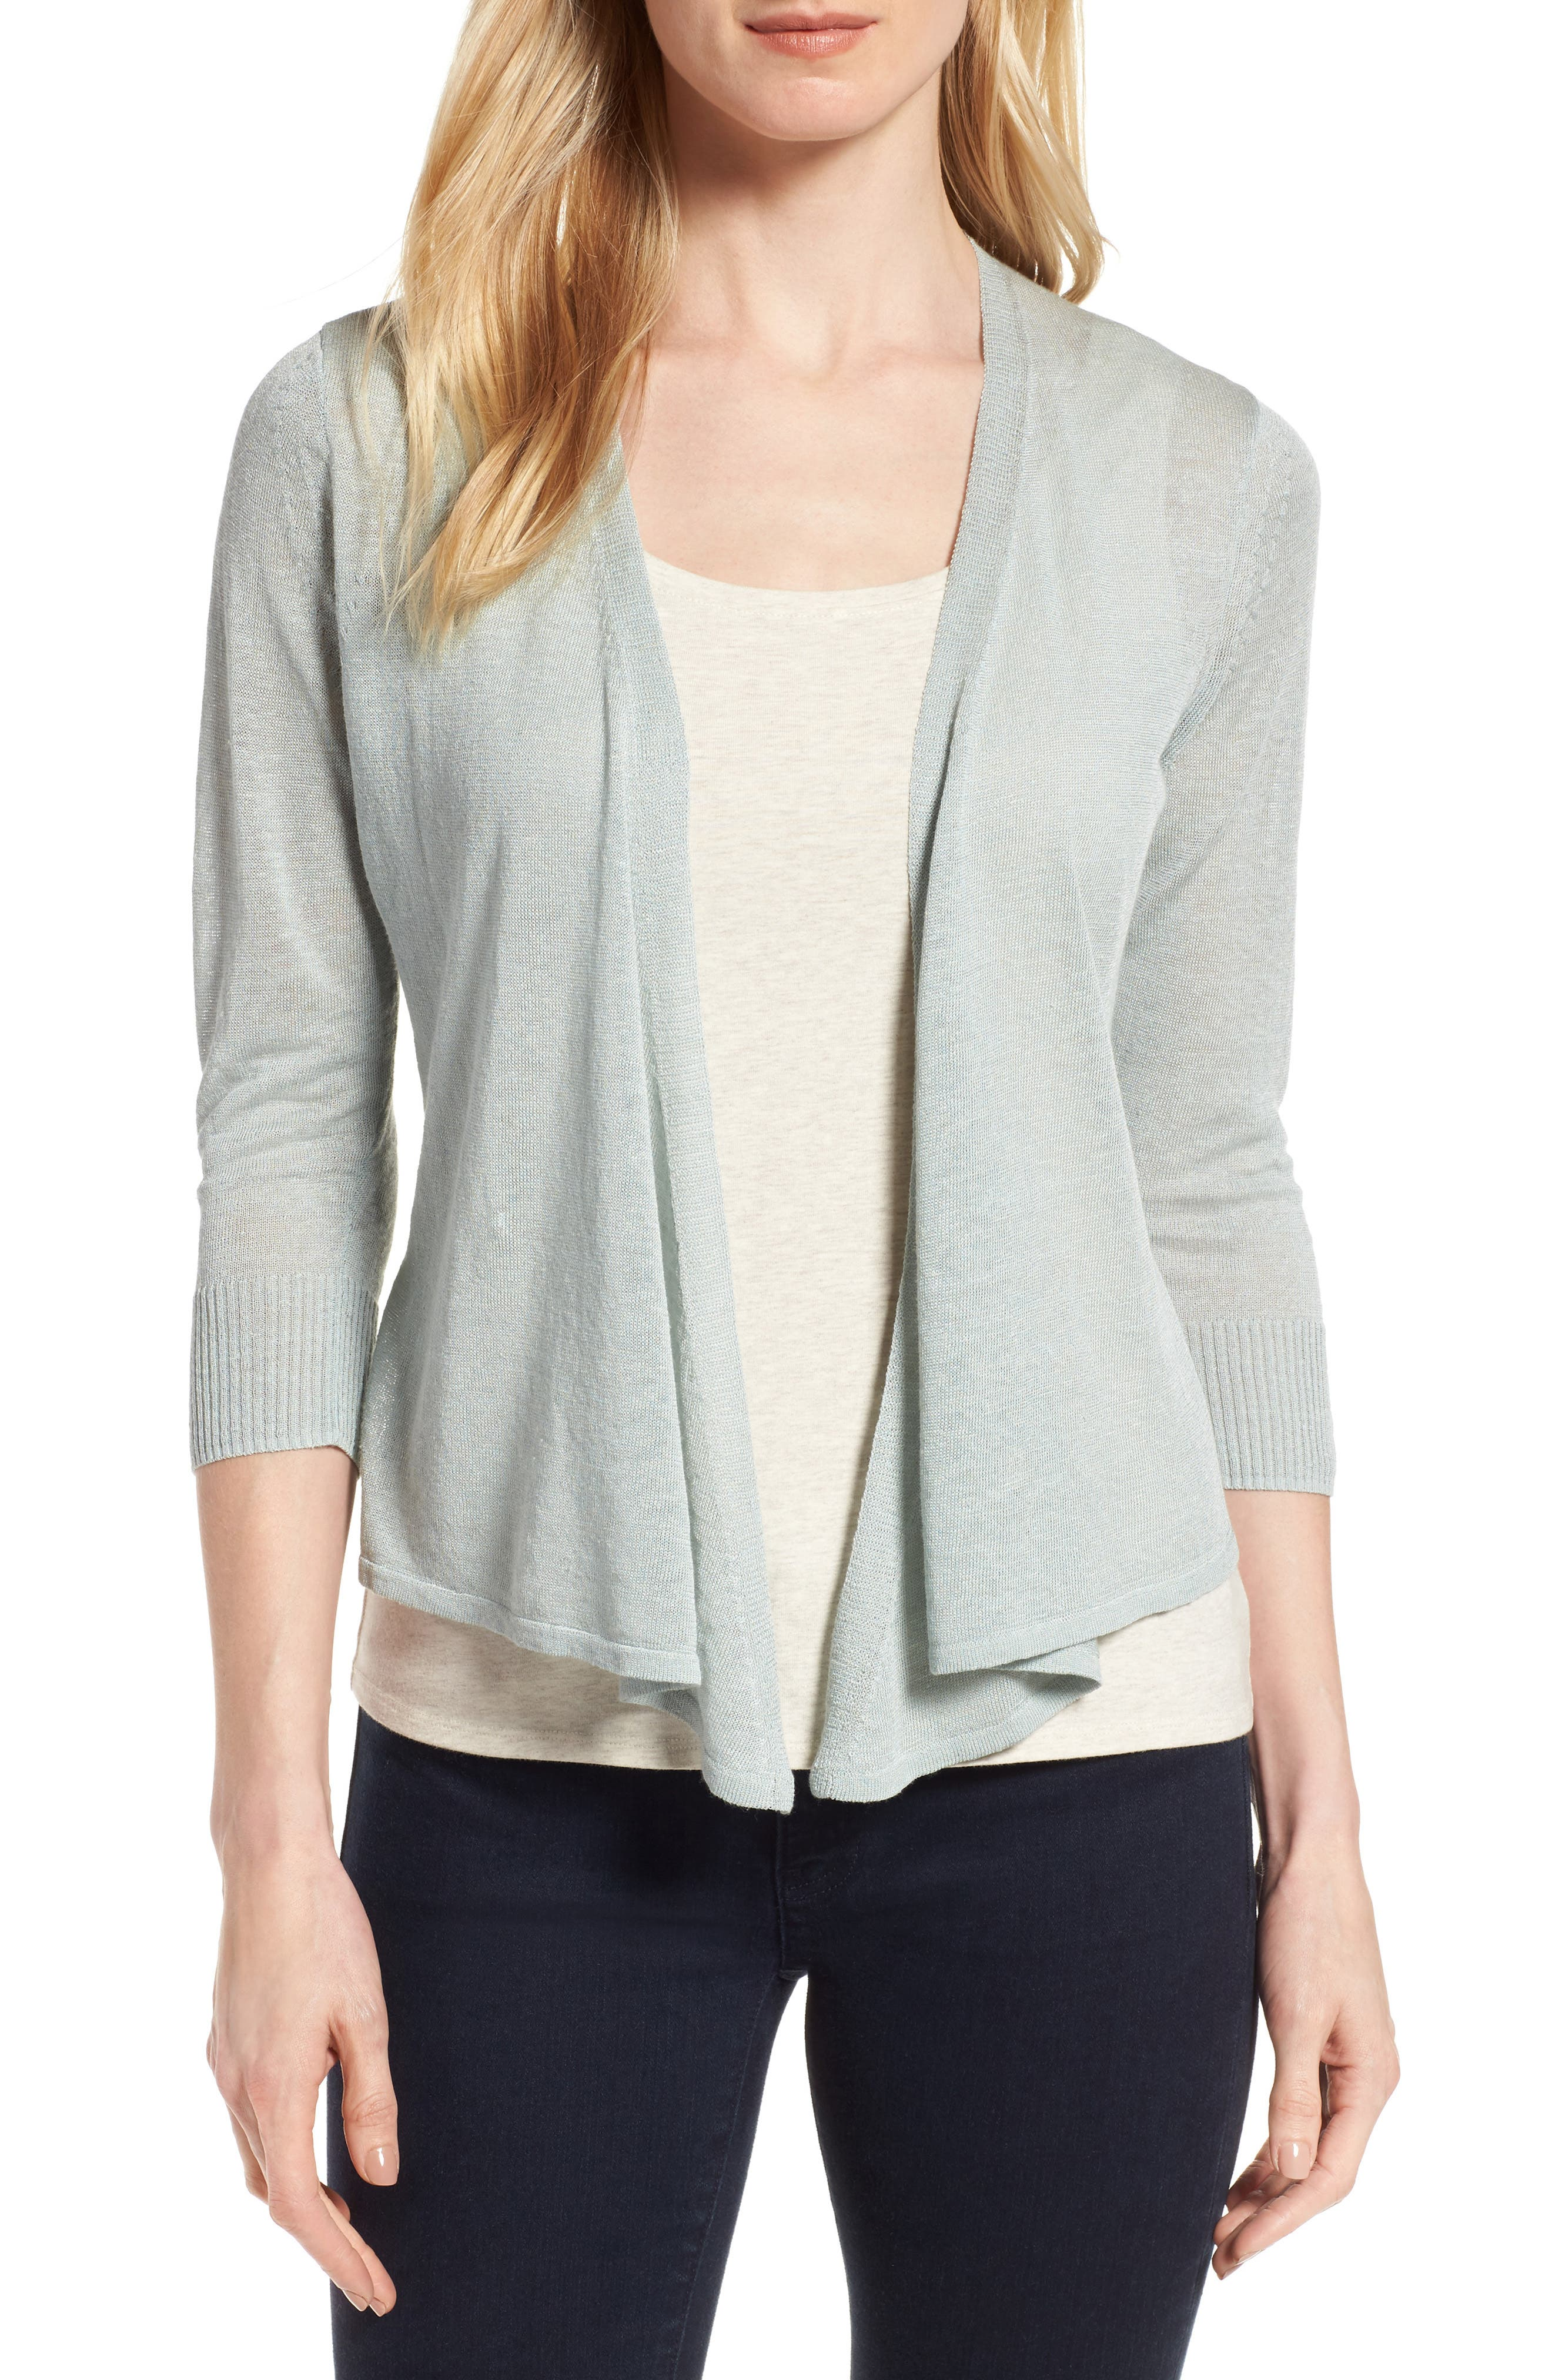 NIC+ZOE '4-Way' Convertible Three Quarter Sleeve Cardigan (Regular and Petite)